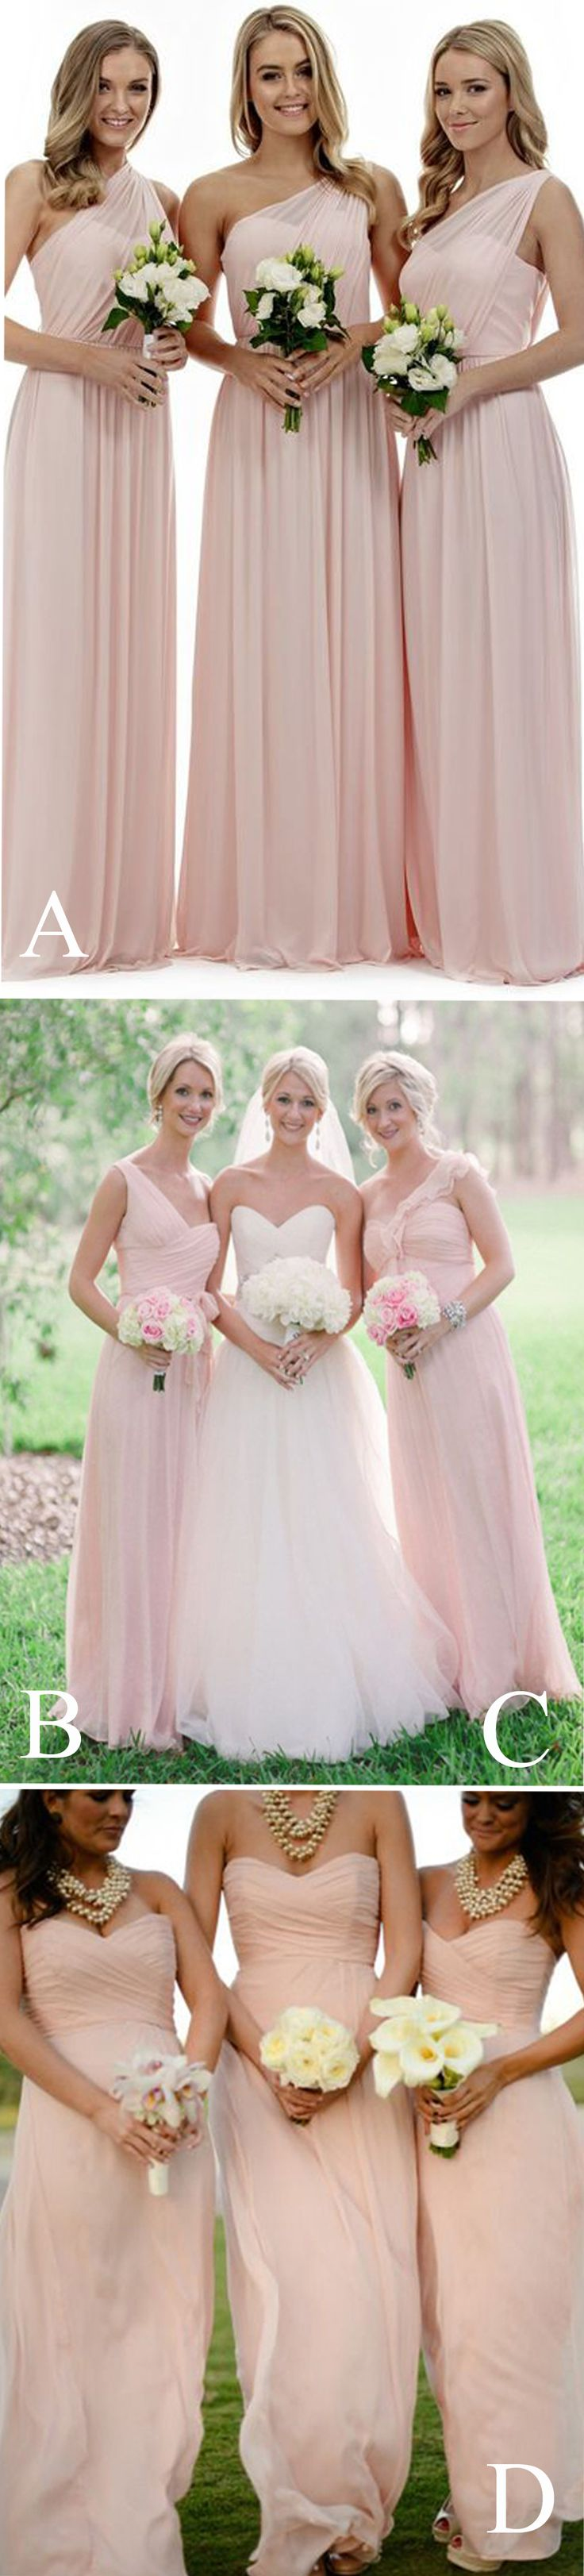 Best 25 light pink bridesmaid dresses ideas only on pinterest long bridesmaid dresslight pink bridesmaid dressesmismatched bridesmaid dresselegant bridesmaid dress ombrellifo Image collections